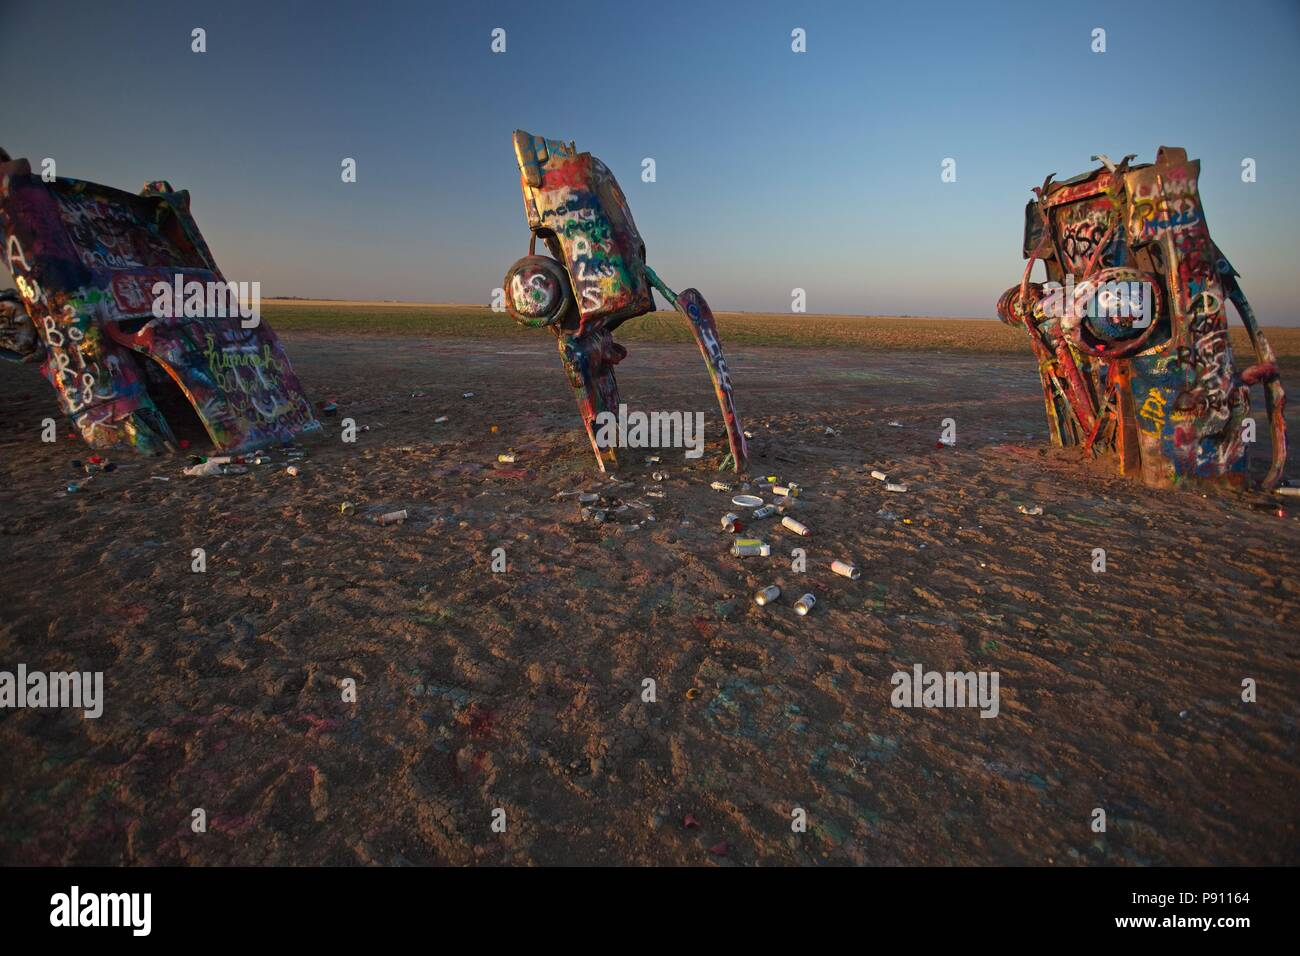 Once unique and iconic Cadillac ranch in Amarillo Texas is now a sad monument to vandalism, grafitti, garbage and distruction - Stock Image